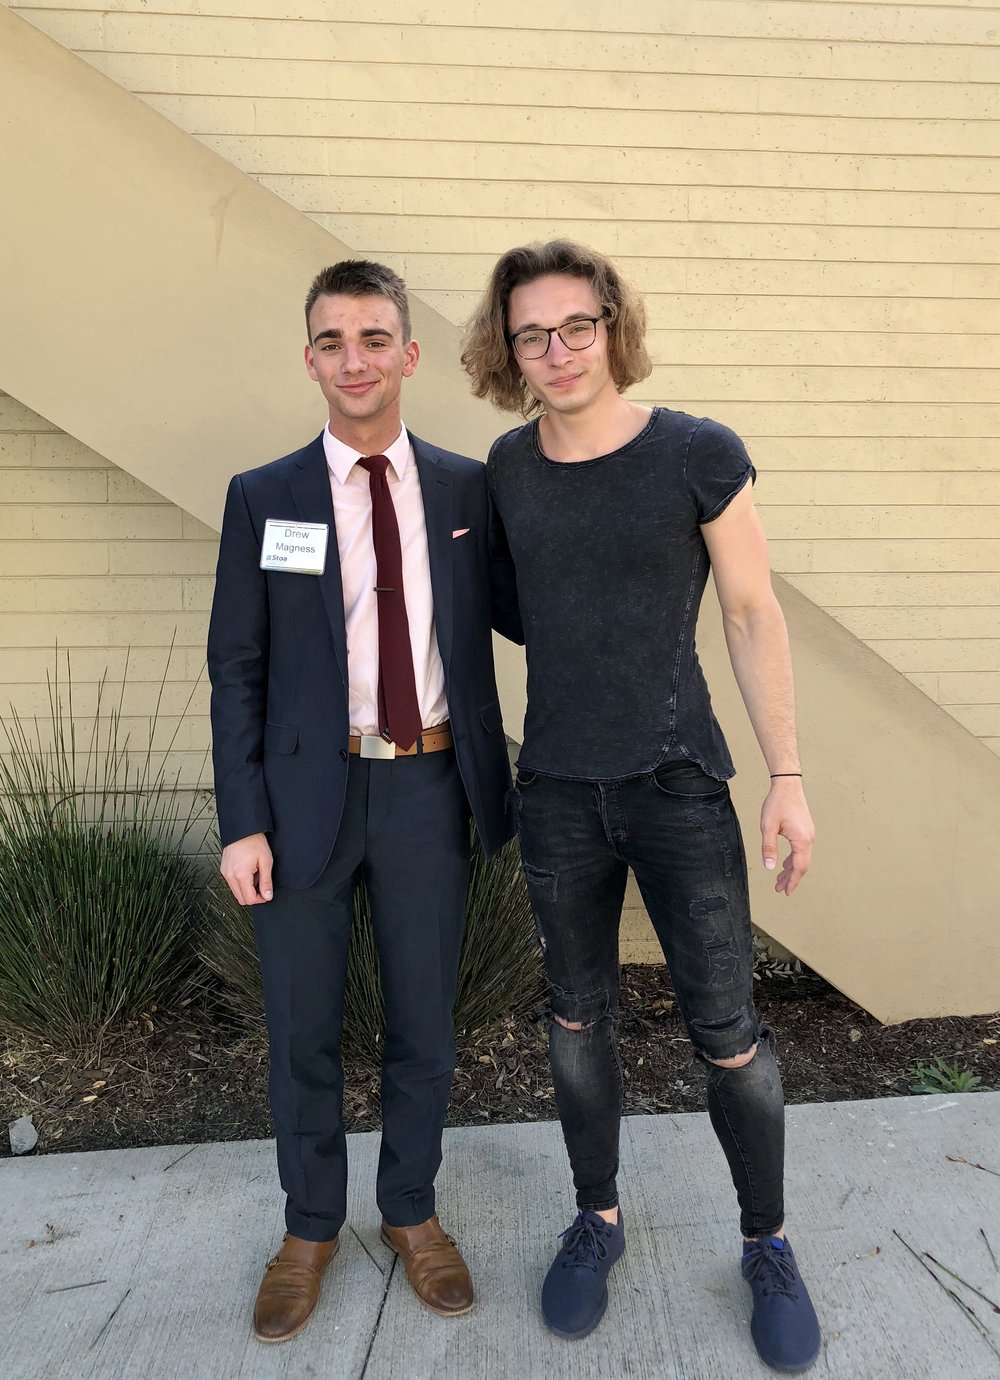 Joseph and Drew before the NITOC 2018 Awards Ceremony.